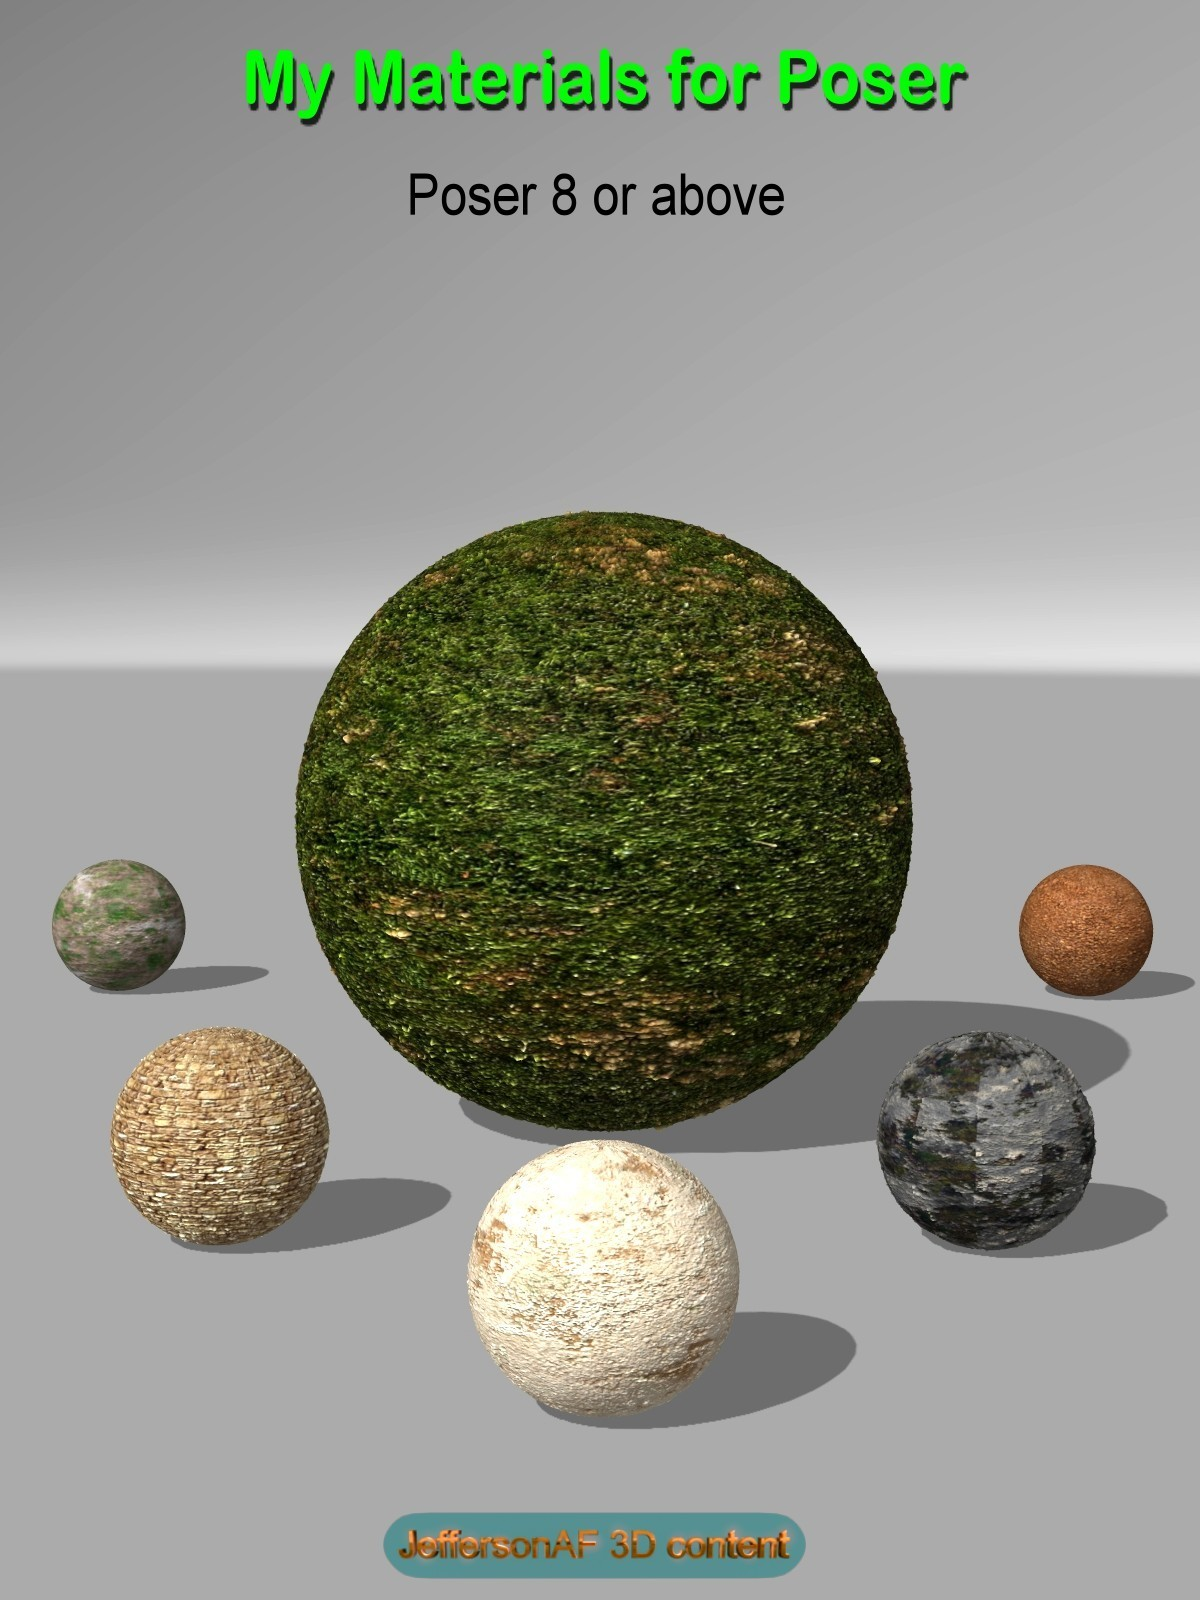 My Materials for Poser